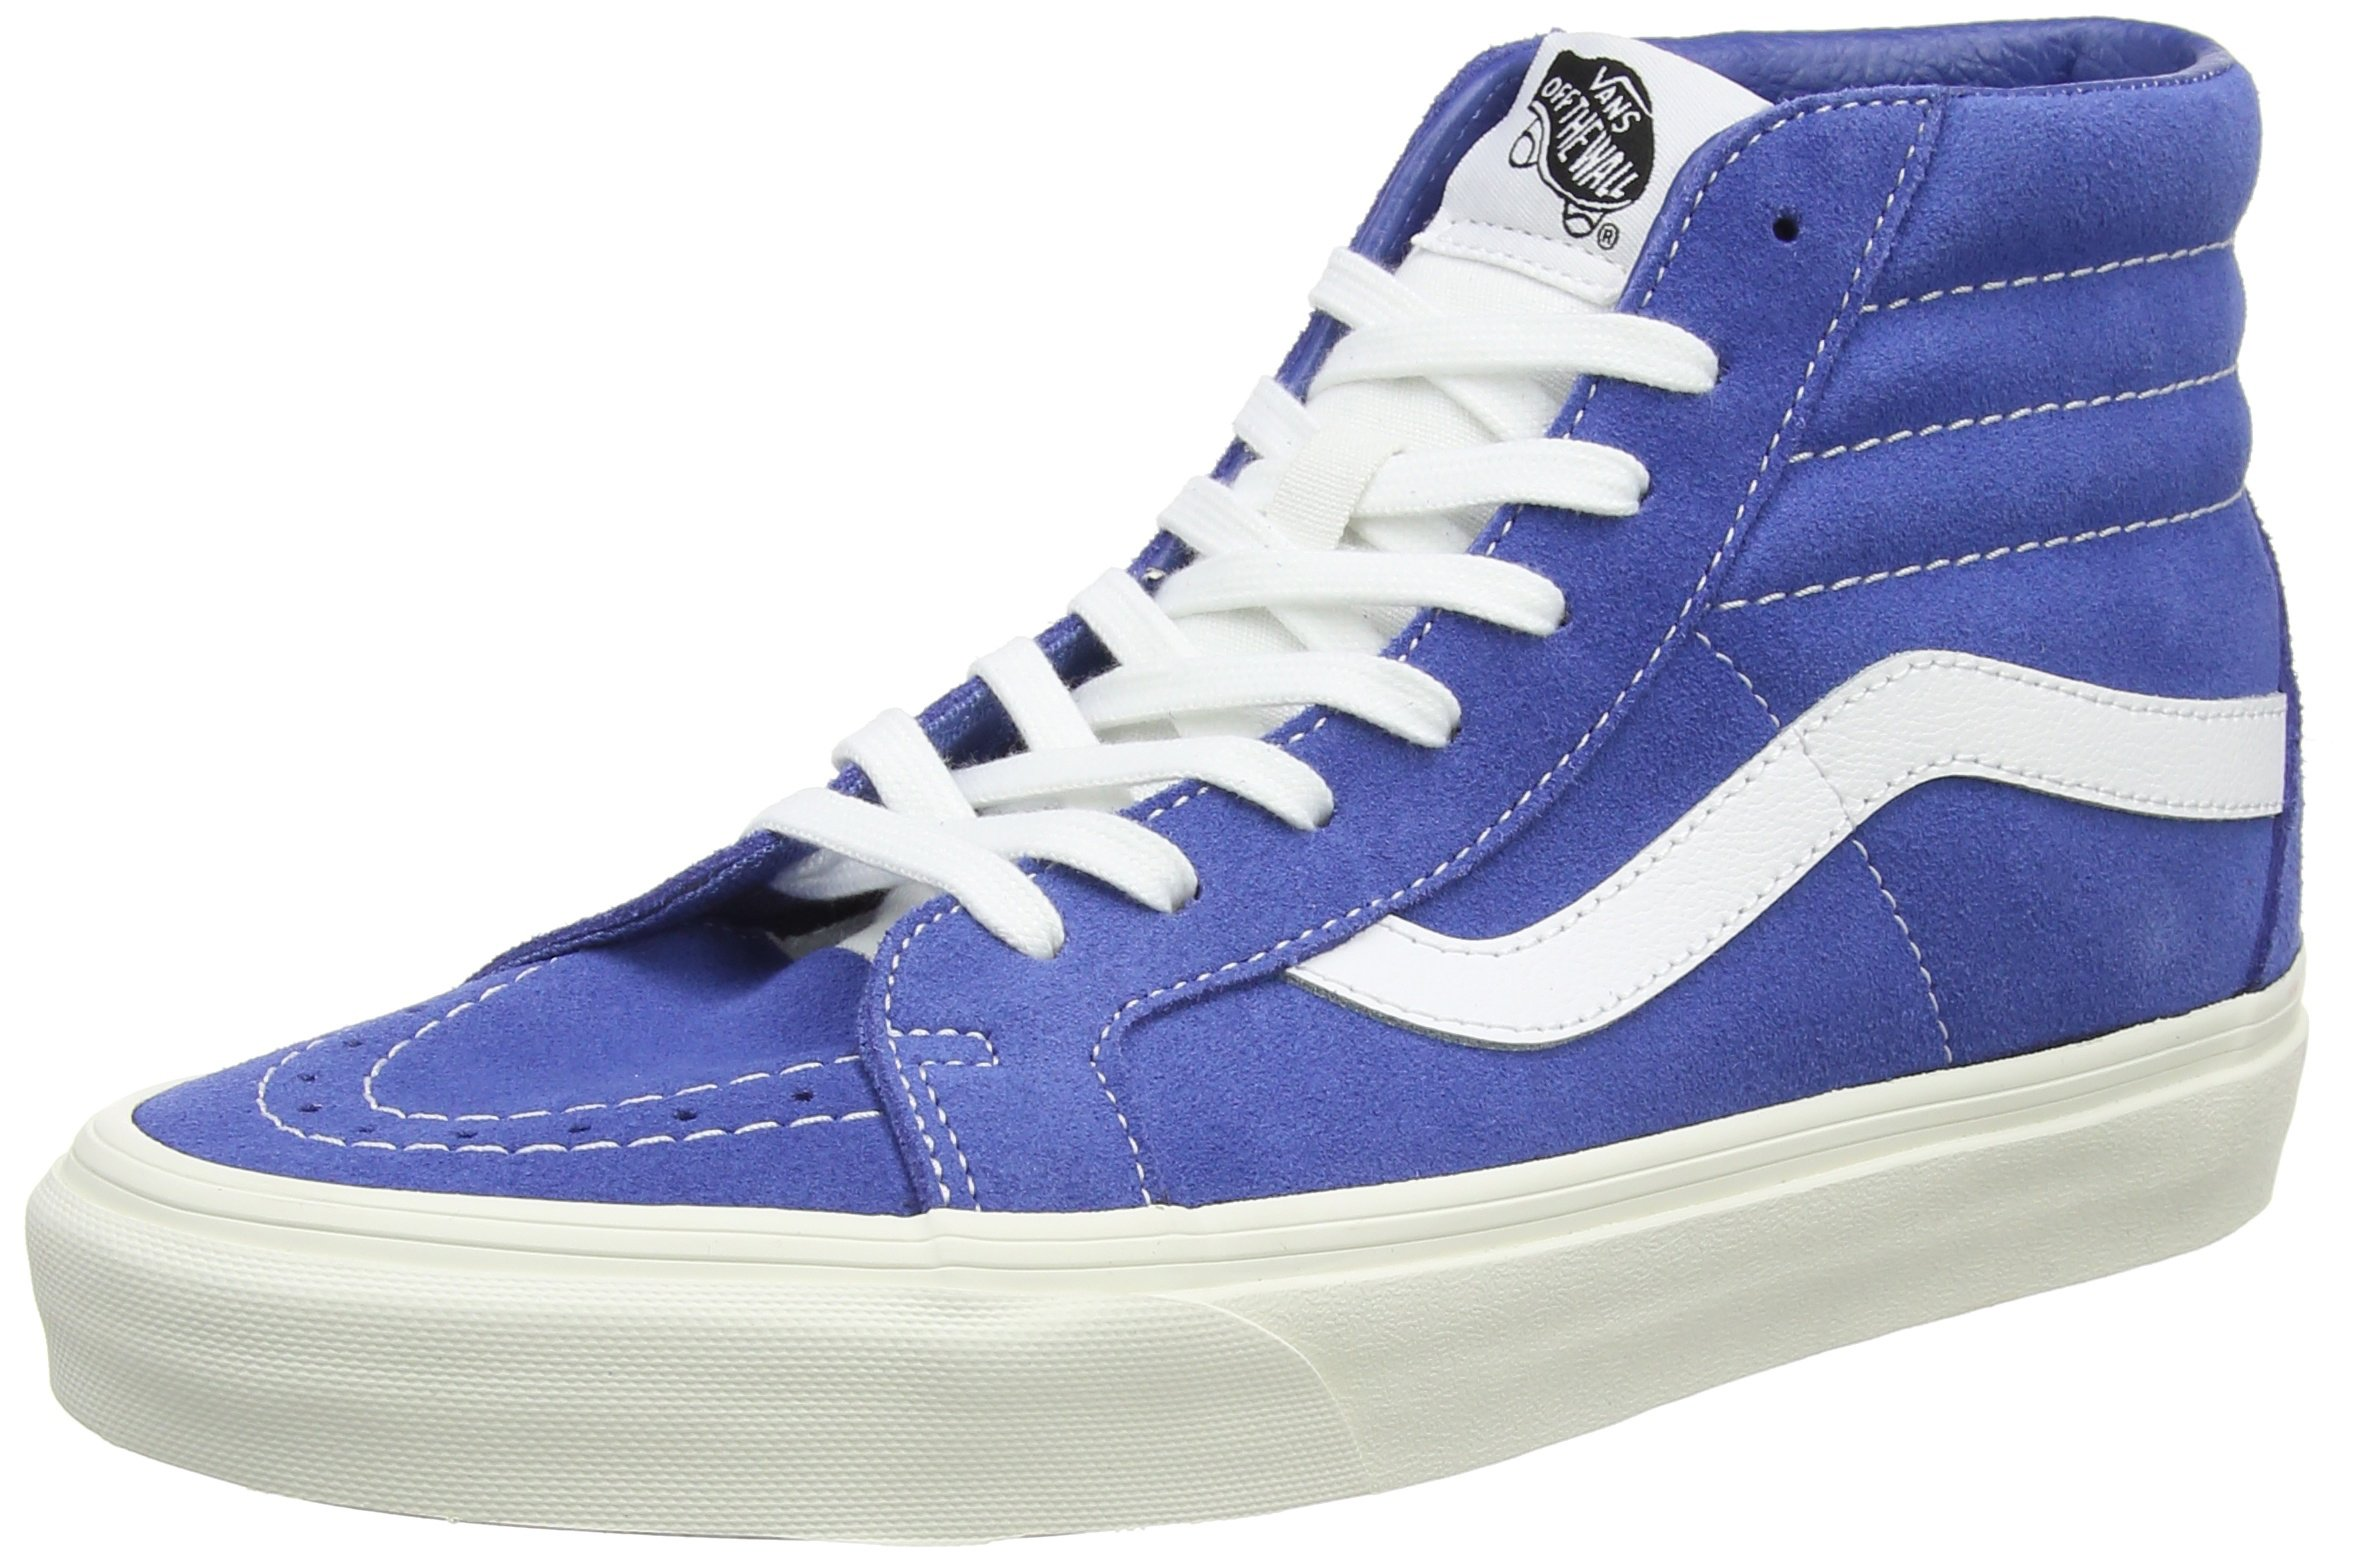 9274c09a36 Galleon - Vans Unisex Sk8-Hi Reissue (Retro Sport) Delft Skate Shoe 10.5  Men US 12 Women US